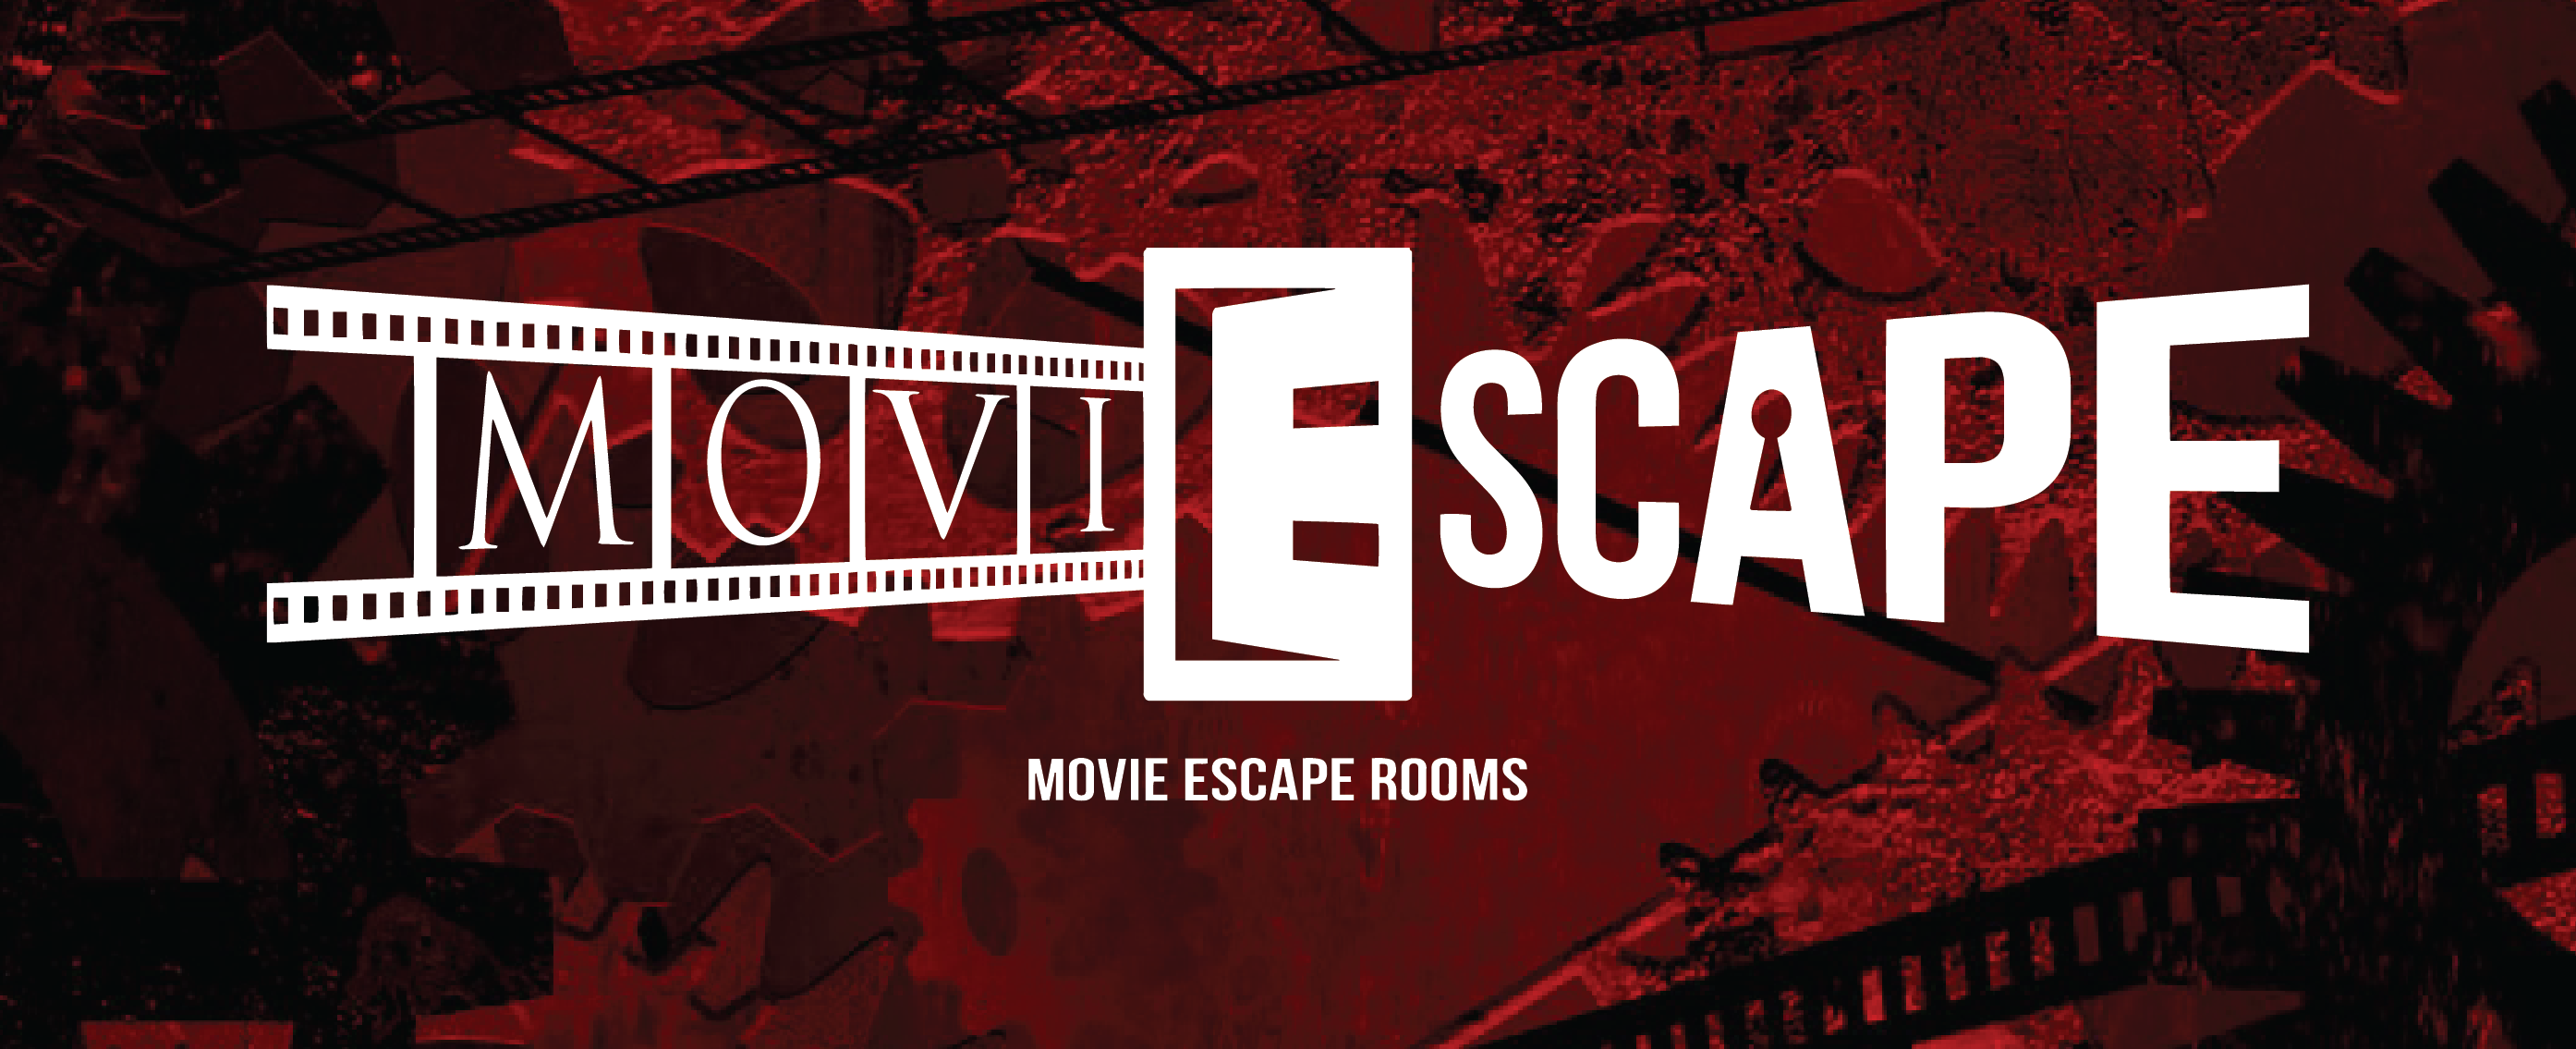 moviescape_logo_with_bg-01_1.png